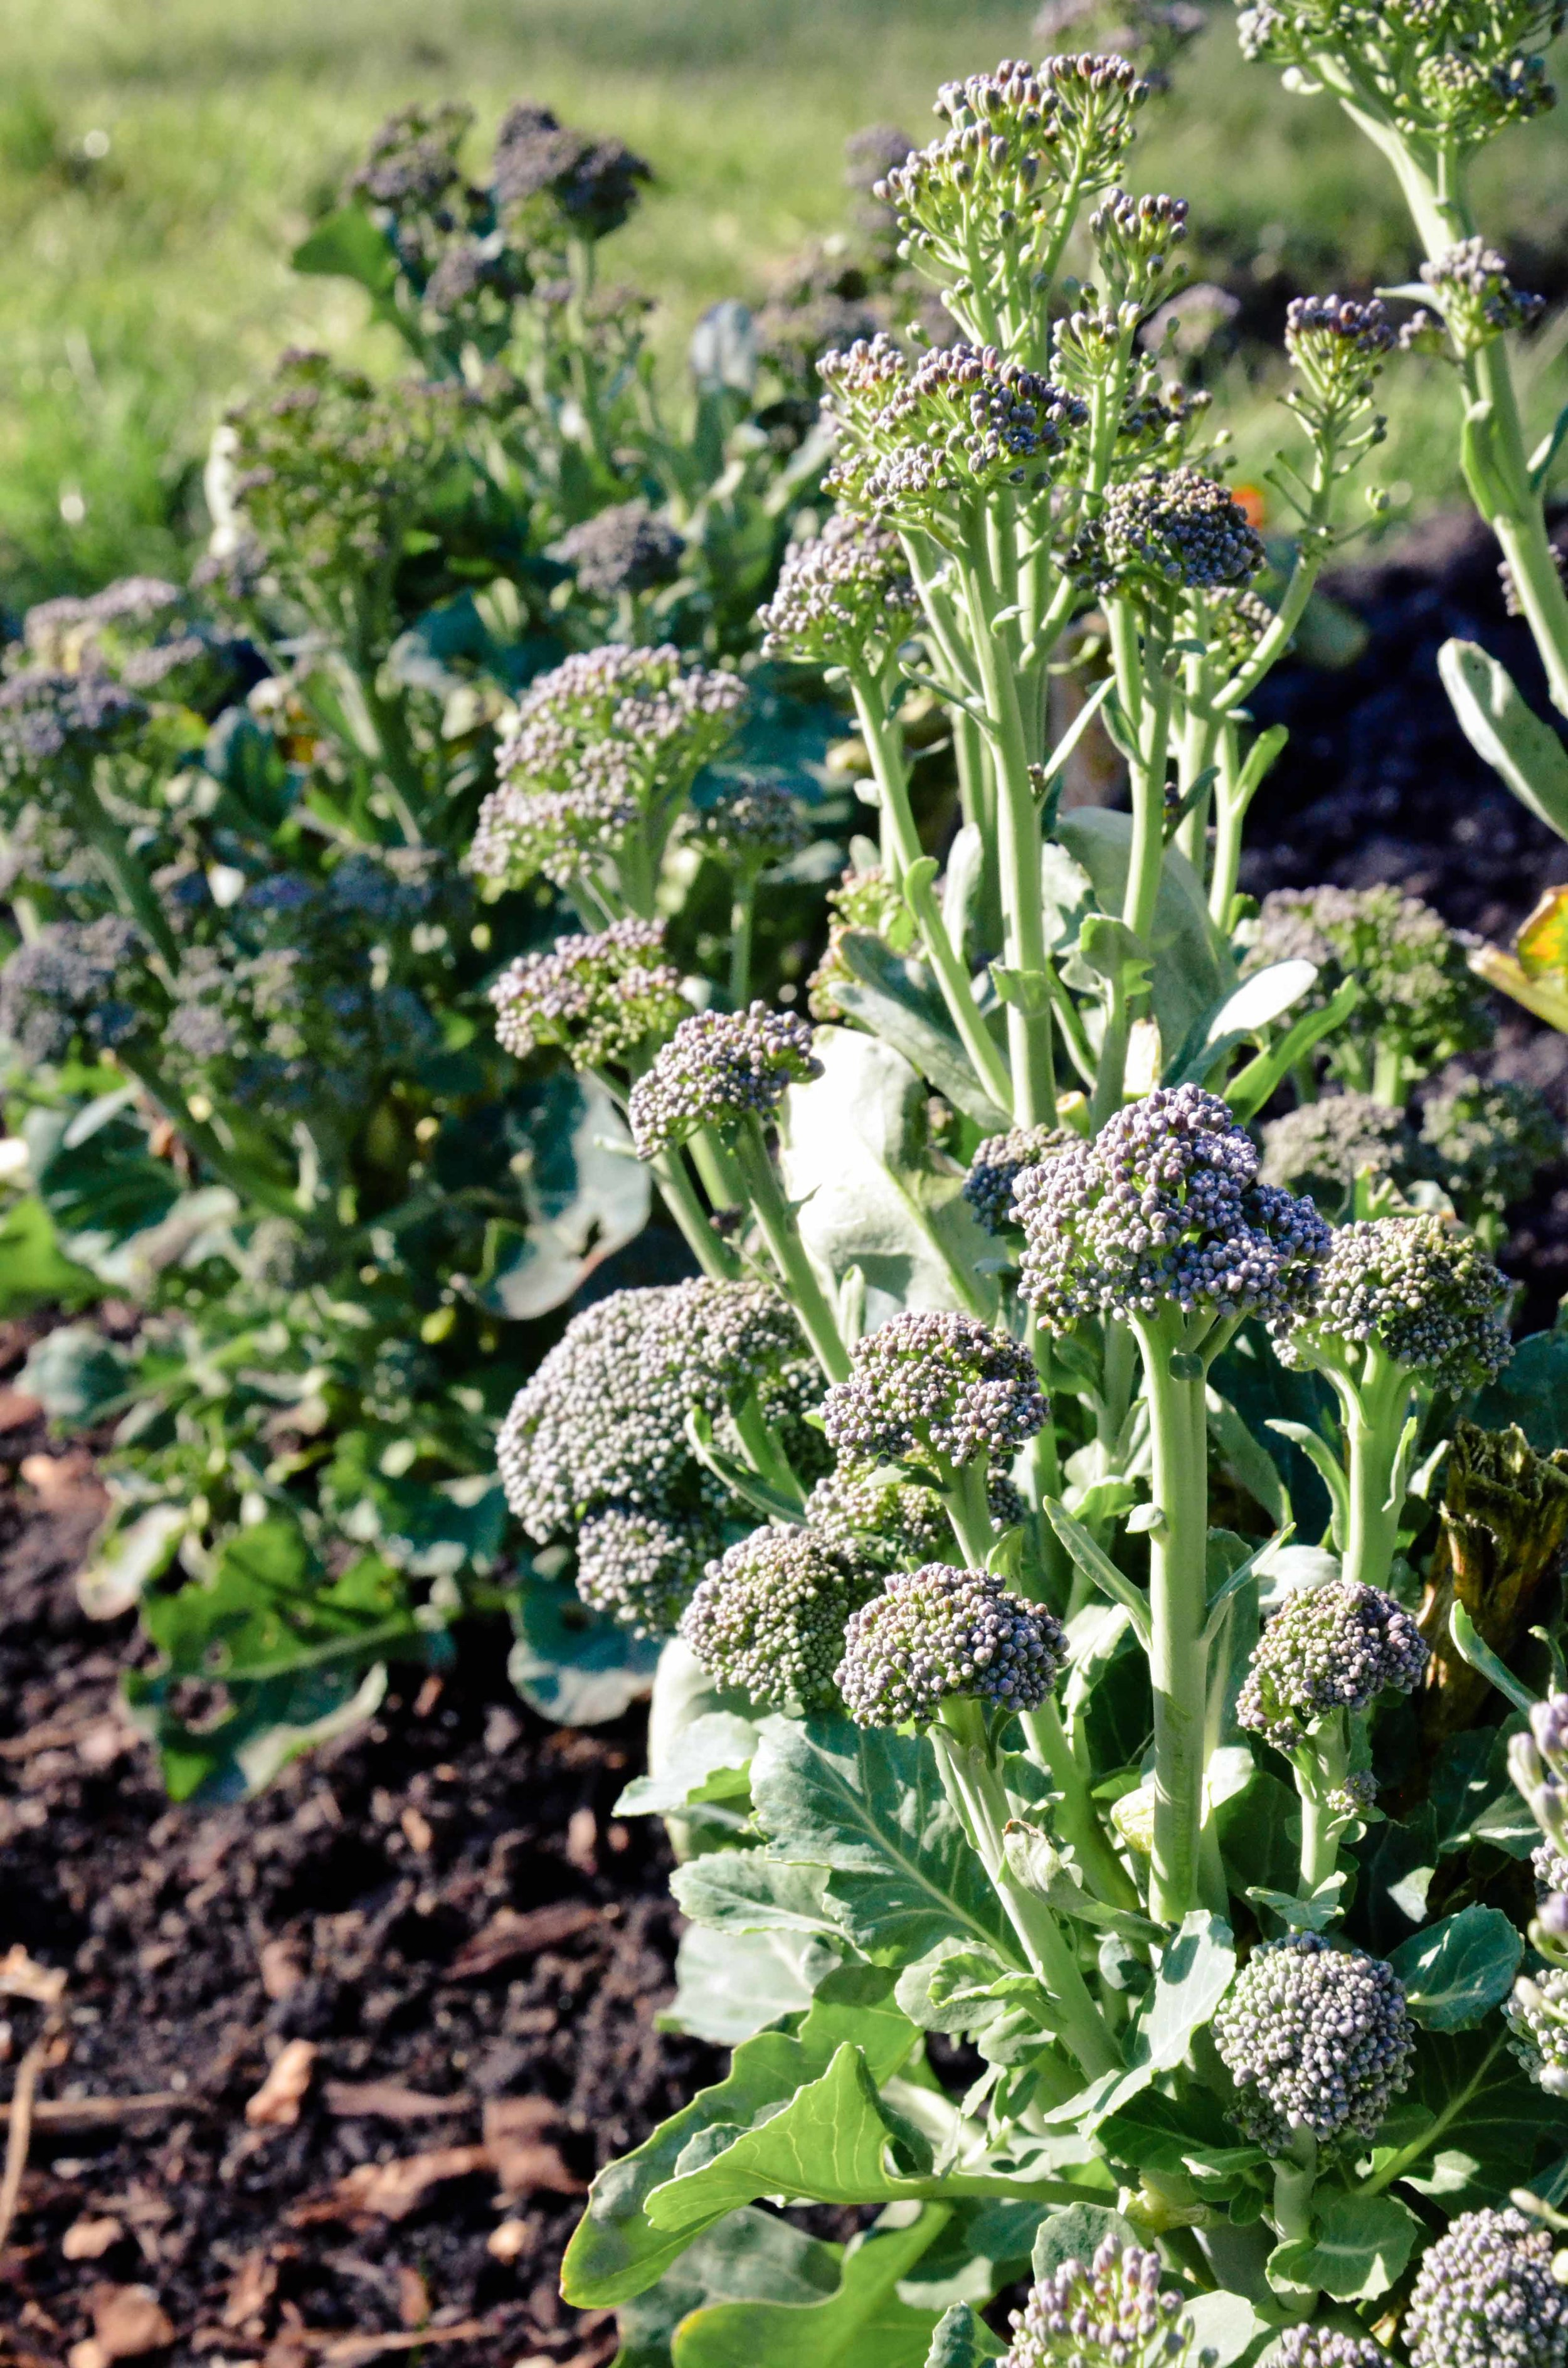 Overwintered broccoli sending out florets in March.